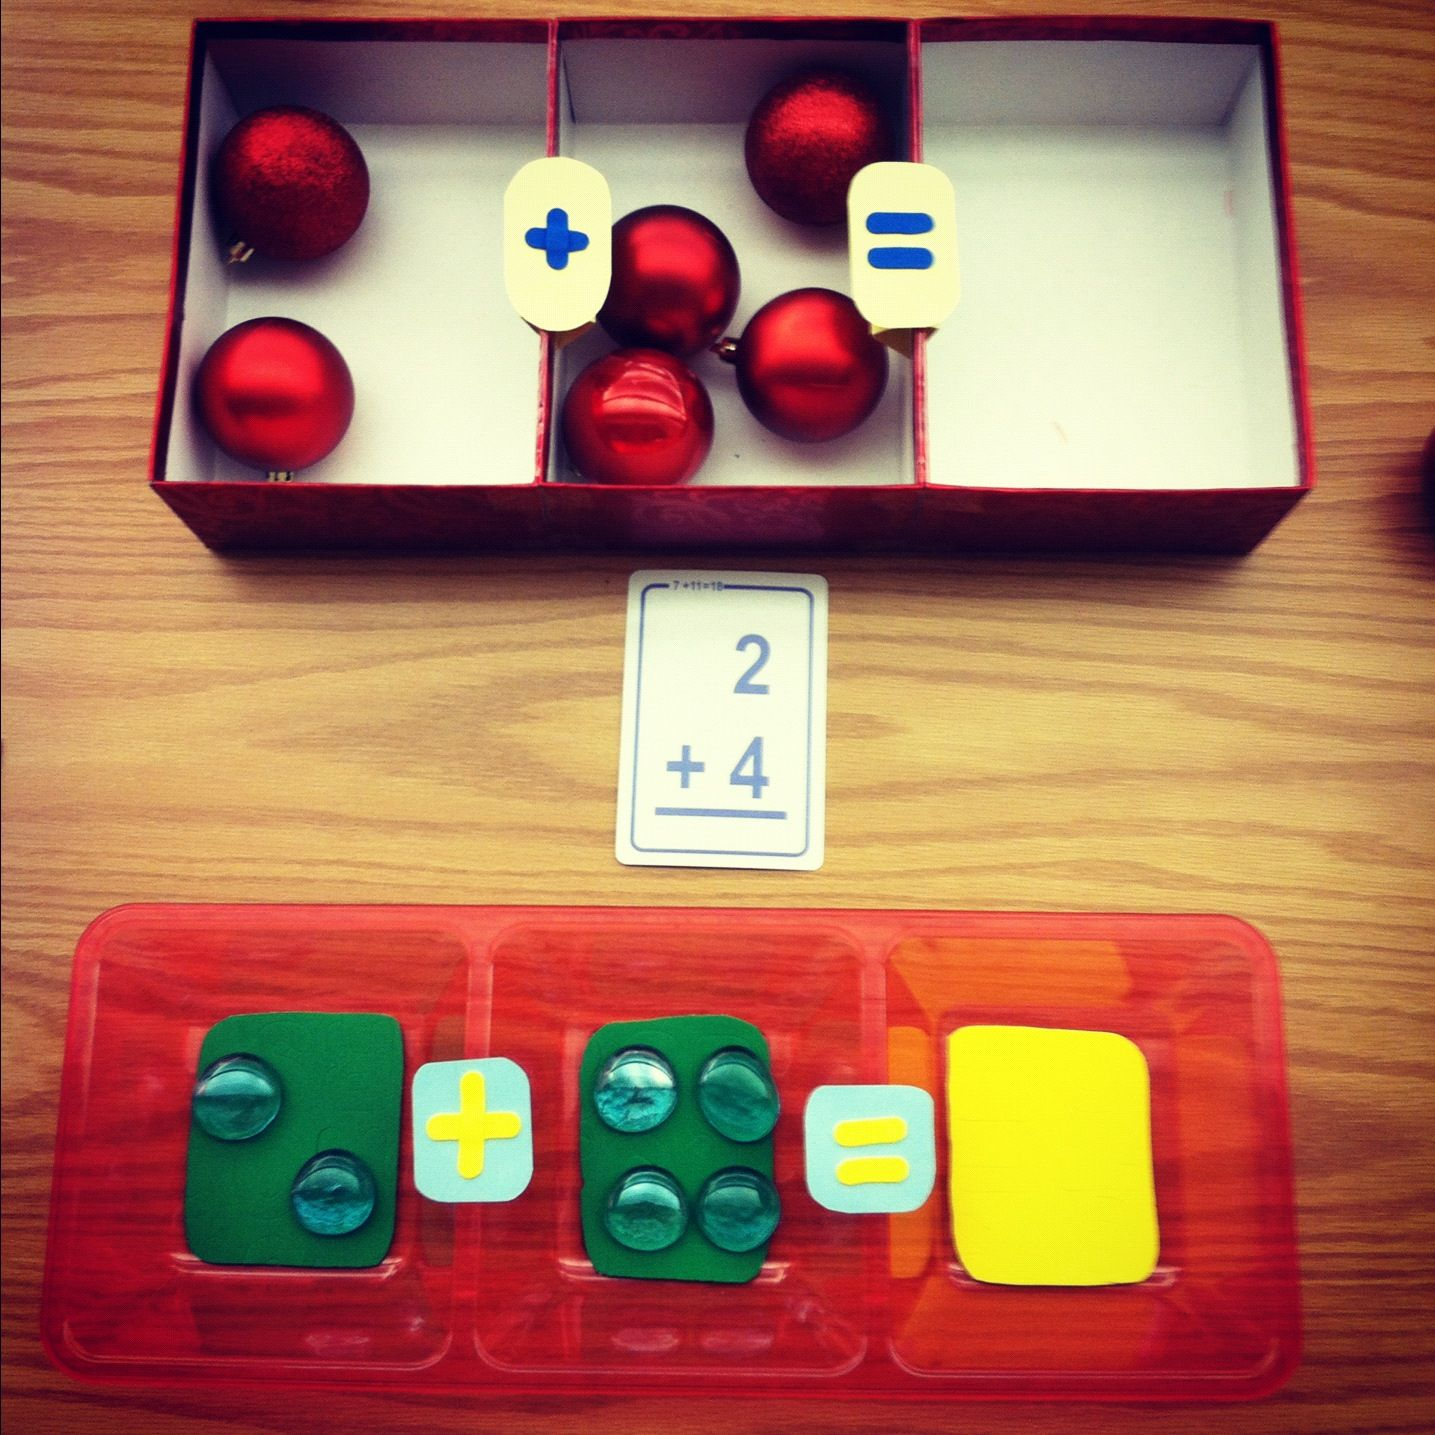 Simple Math game all you need are some flash cards